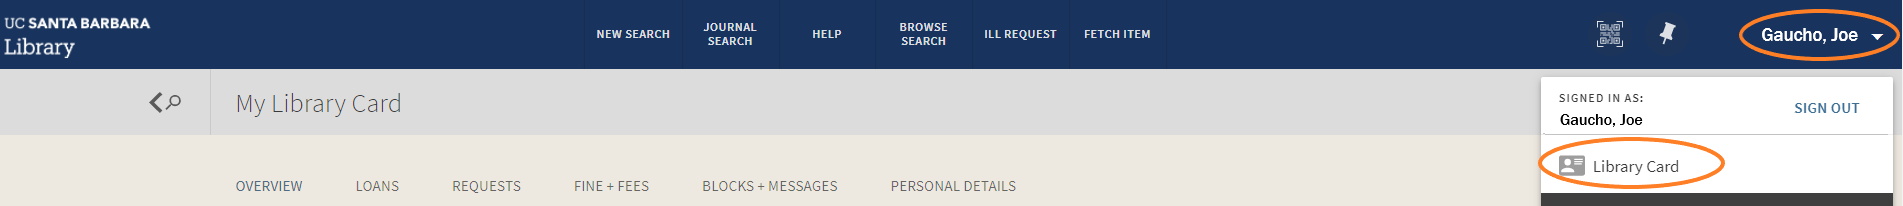 login and select library card info for UC Library Search